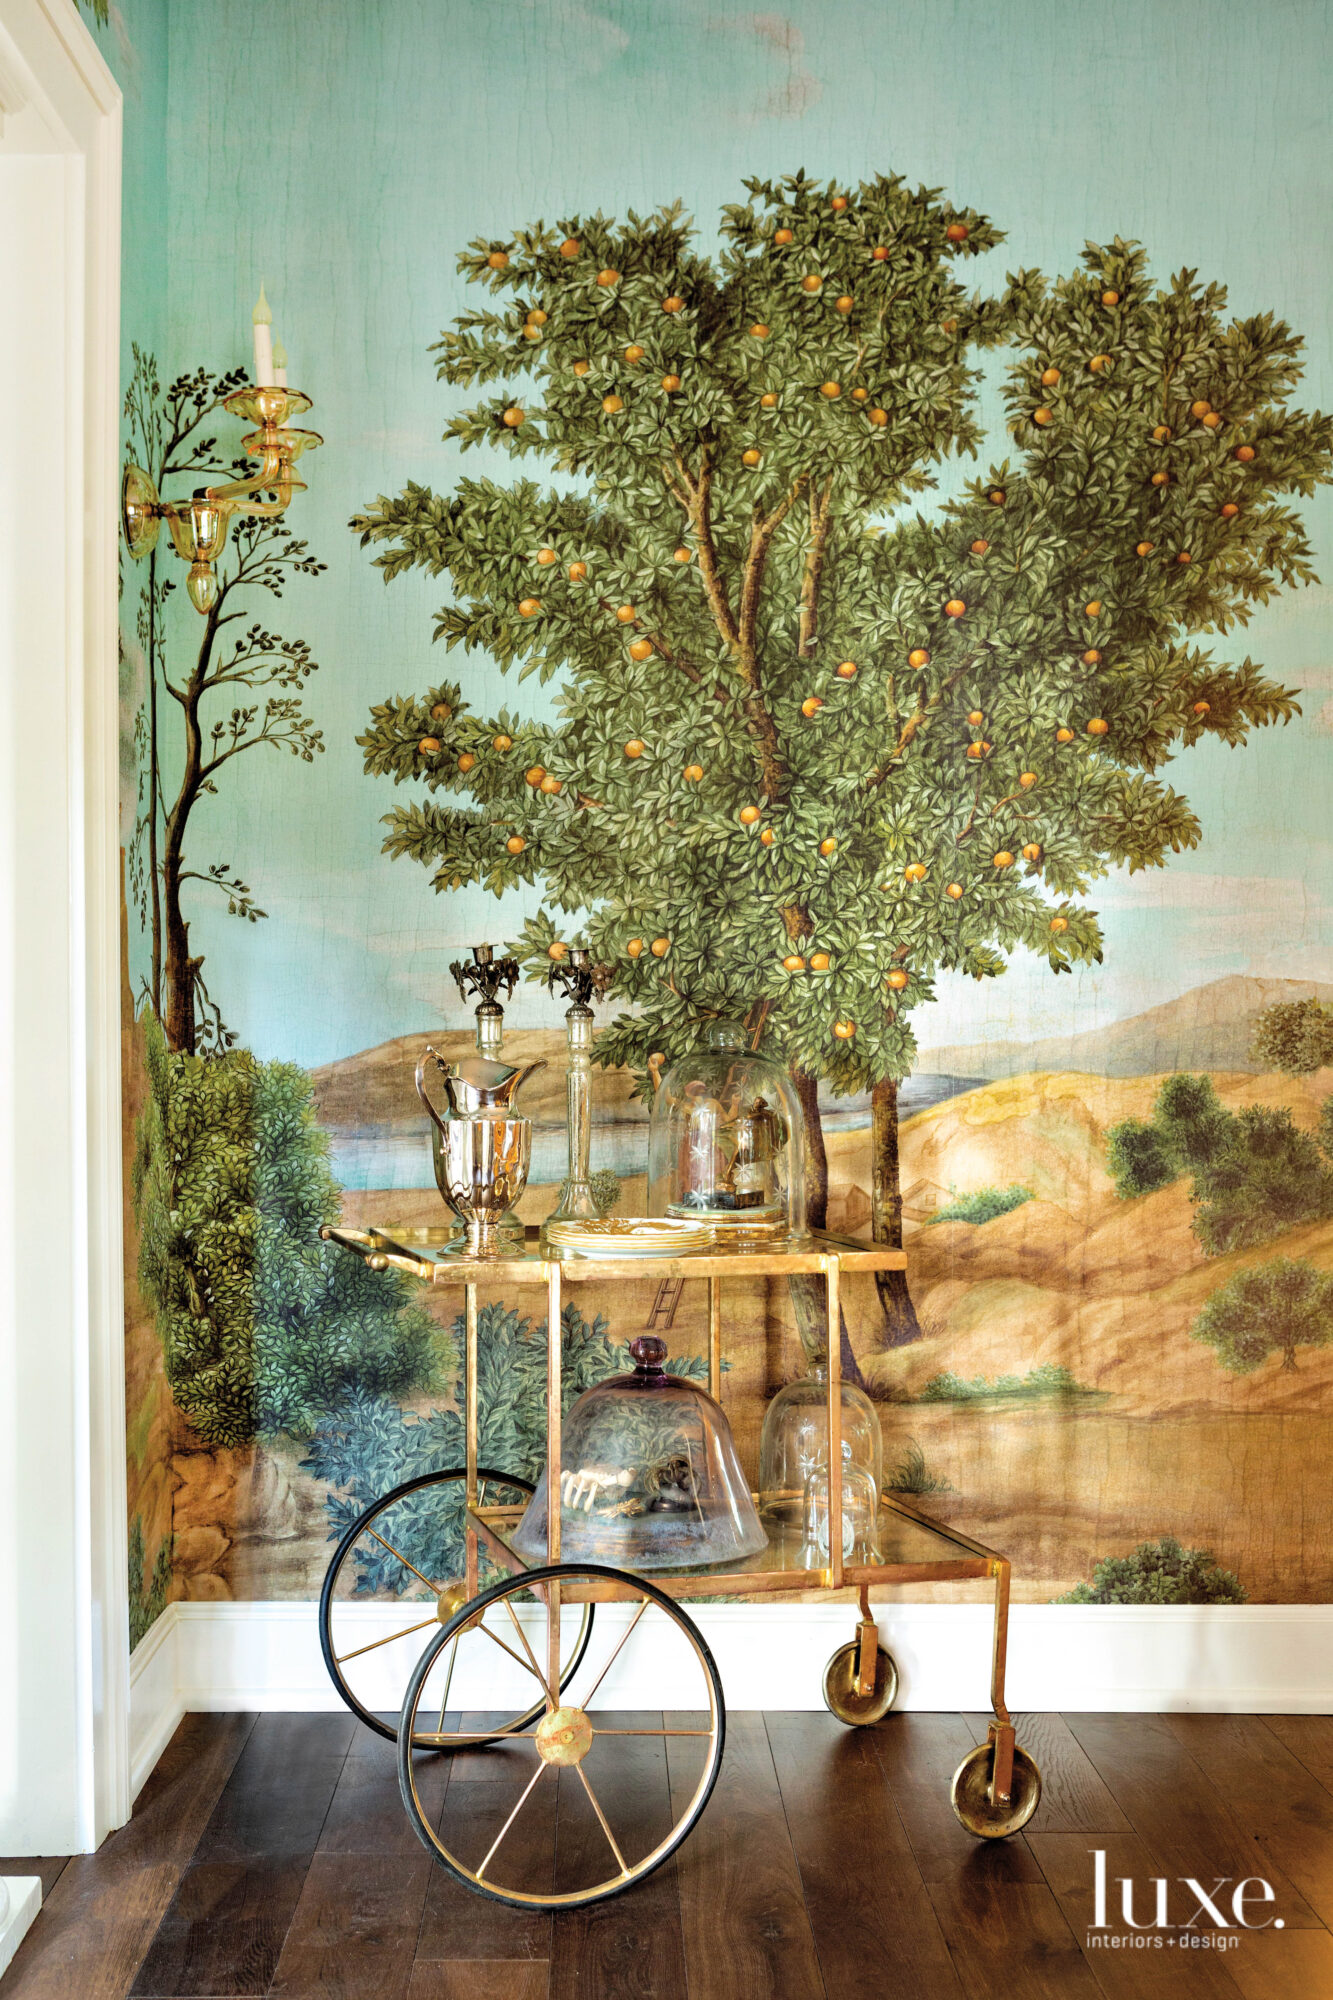 Scenic wallpaper with brass bar...